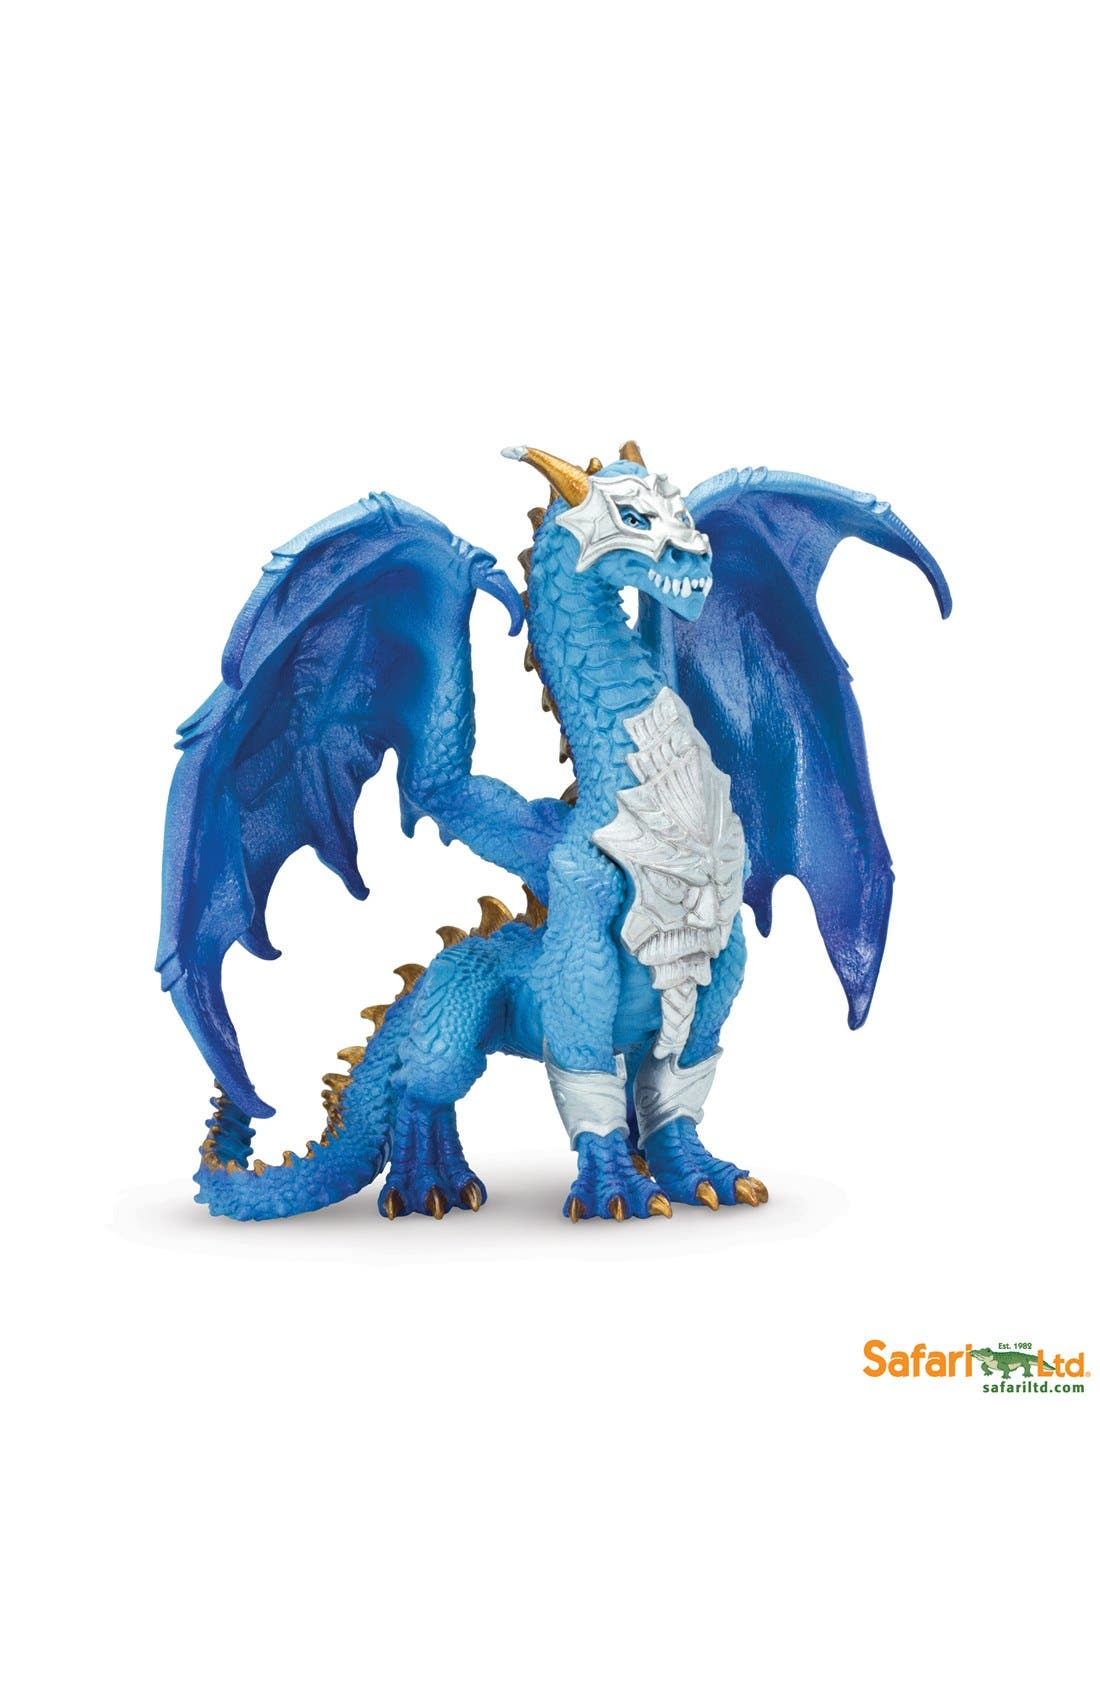 SAFARI LTD.,                             Guardian Dragon Figurine,                             Main thumbnail 1, color,                             960